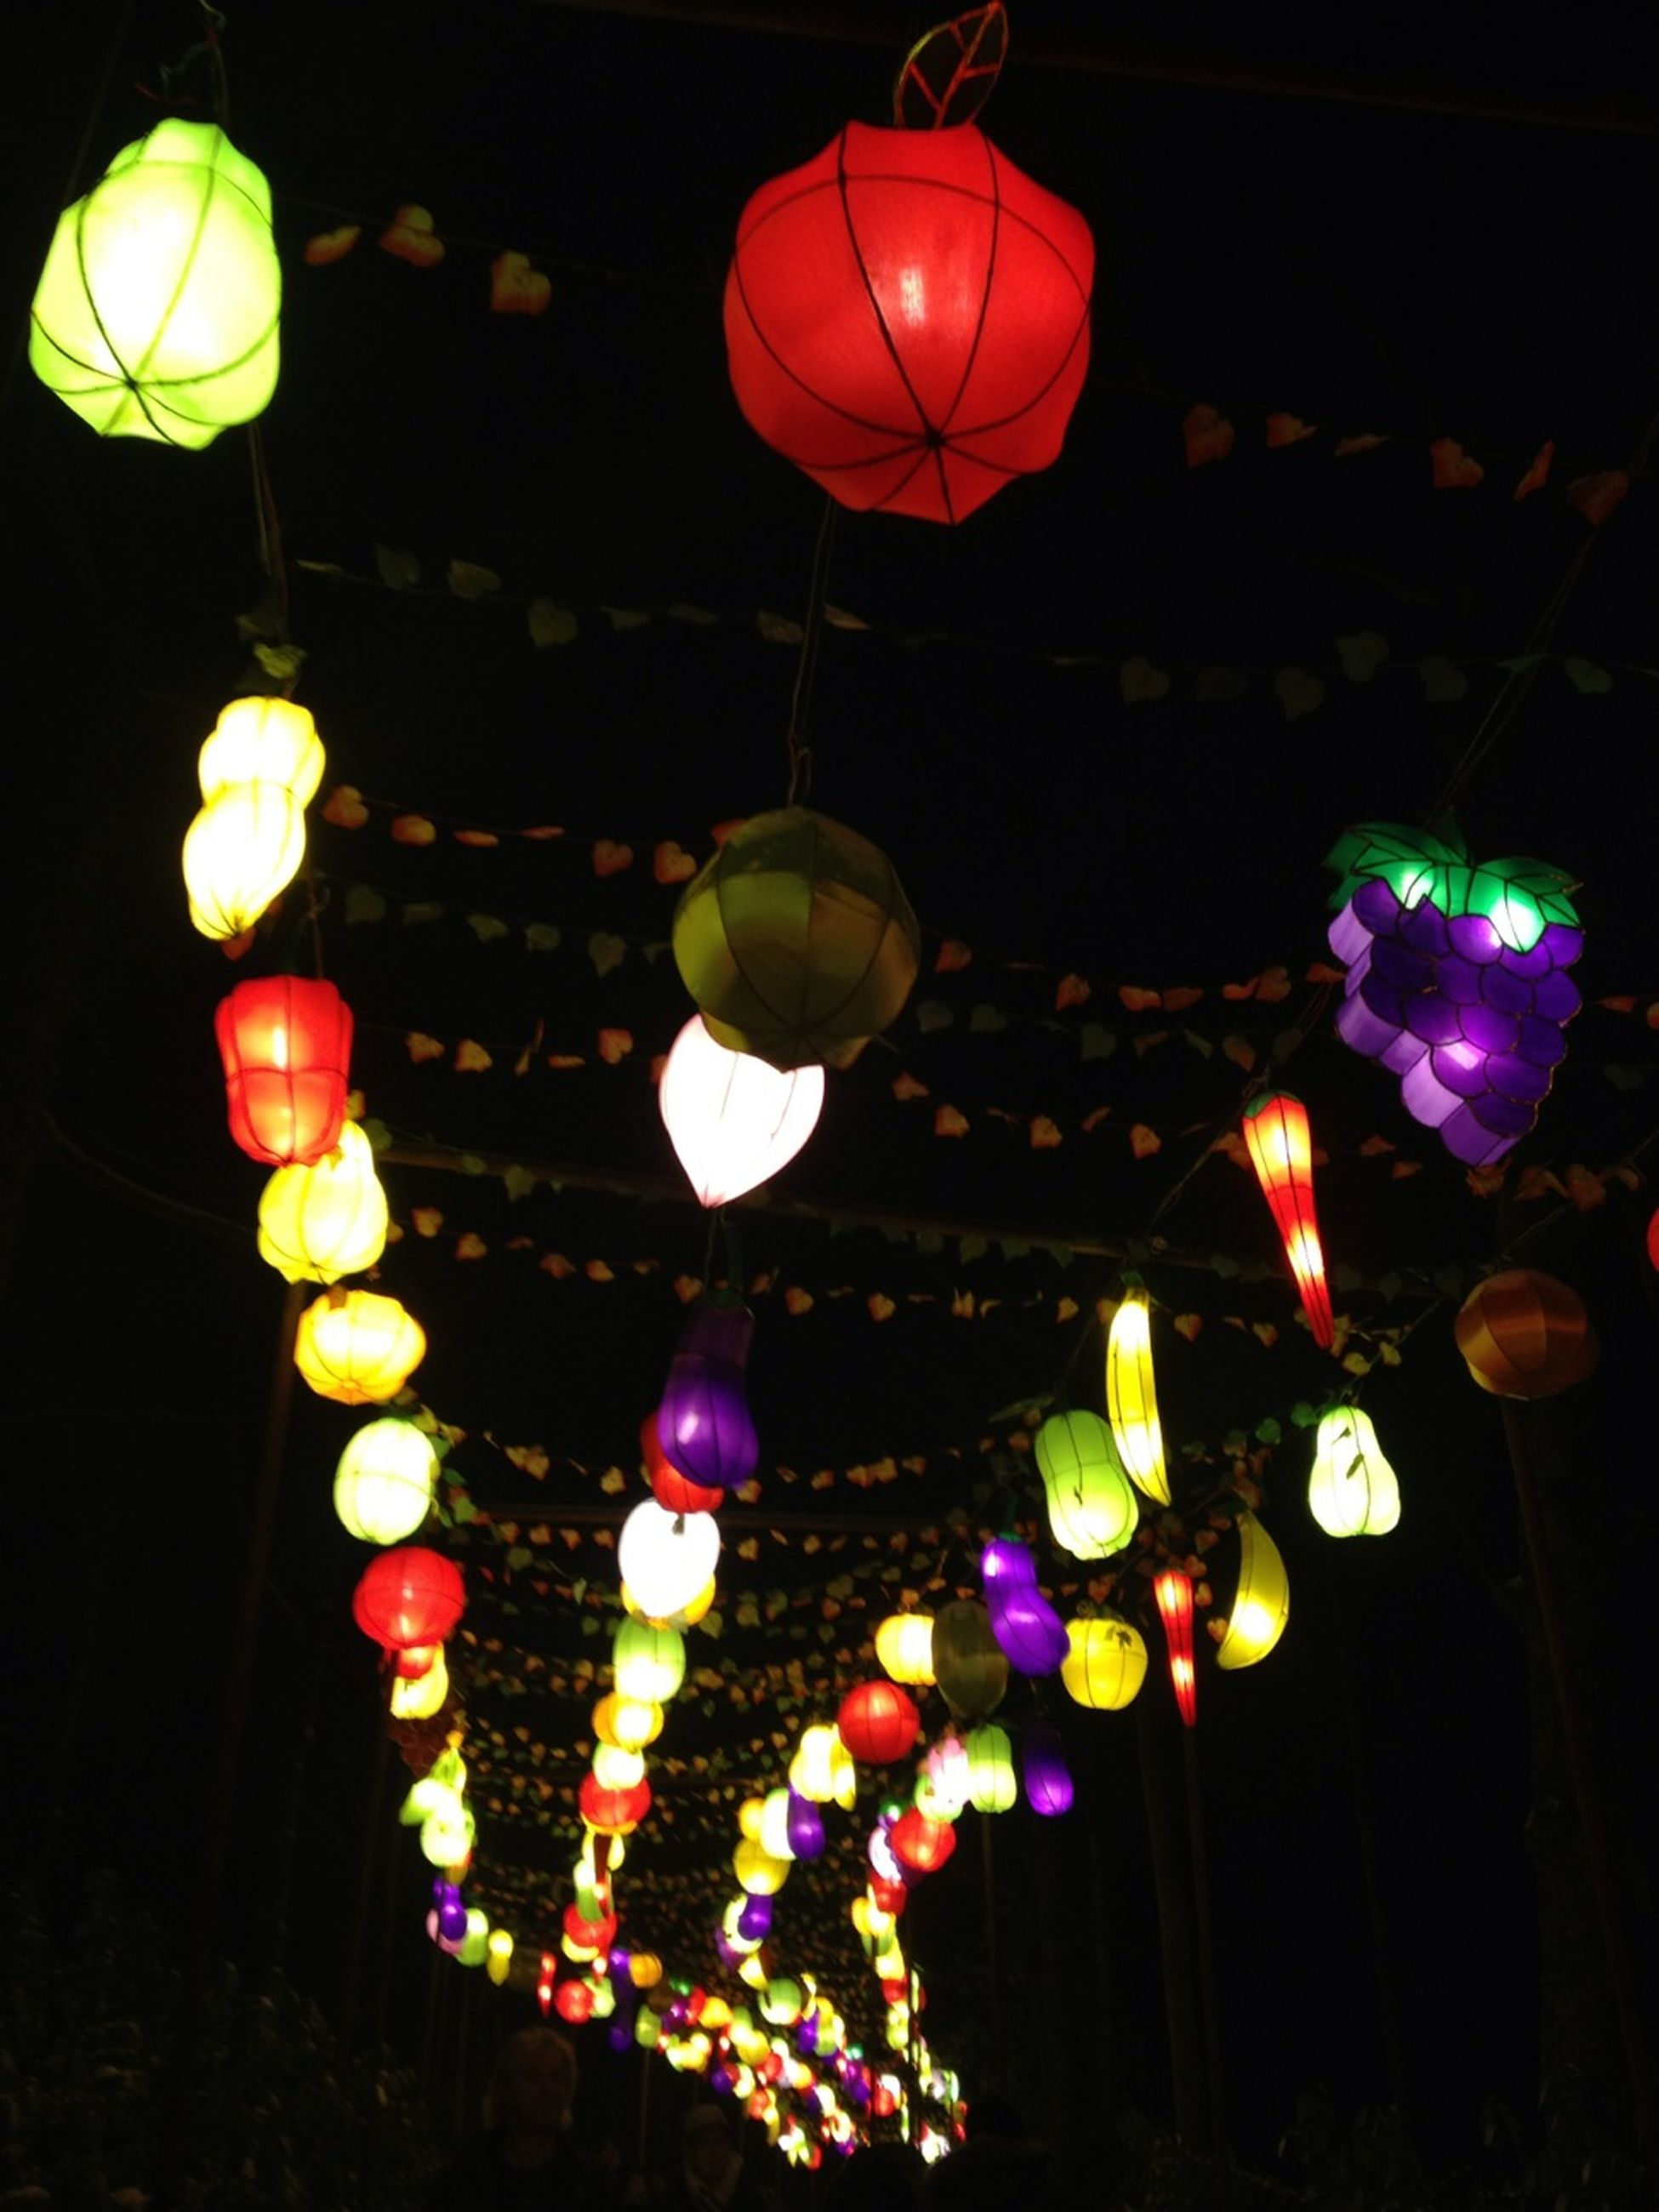 illuminated, lighting equipment, hanging, decoration, night, low angle view, lantern, electricity, celebration, multi colored, electric light, chinese lantern, in a row, electric lamp, light - natural phenomenon, cultures, ceiling, light, indoors, glowing